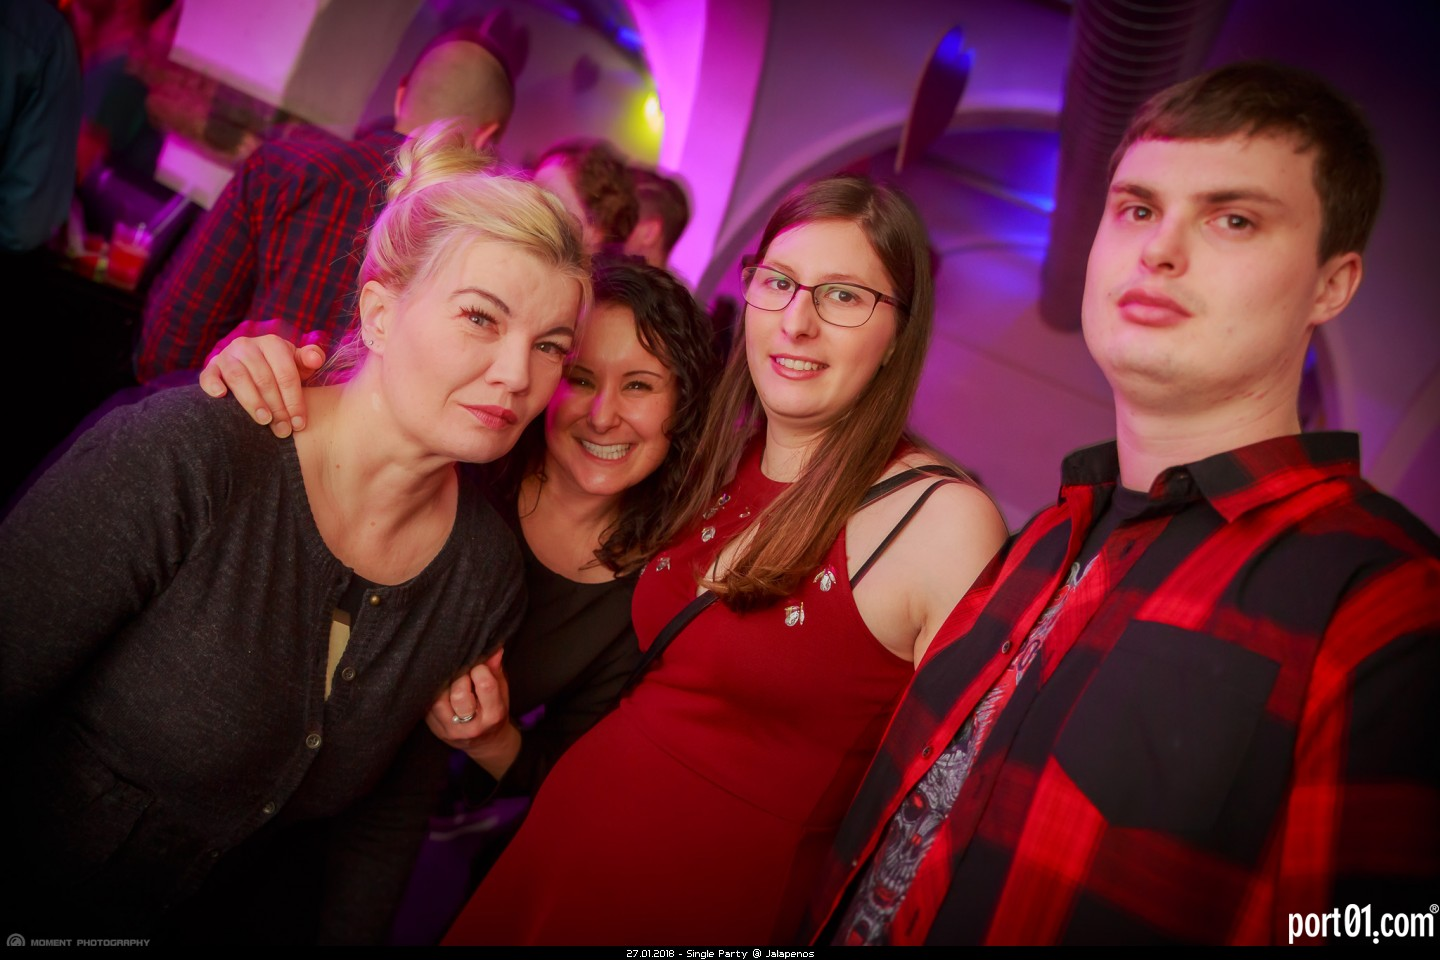 Regensburg single party